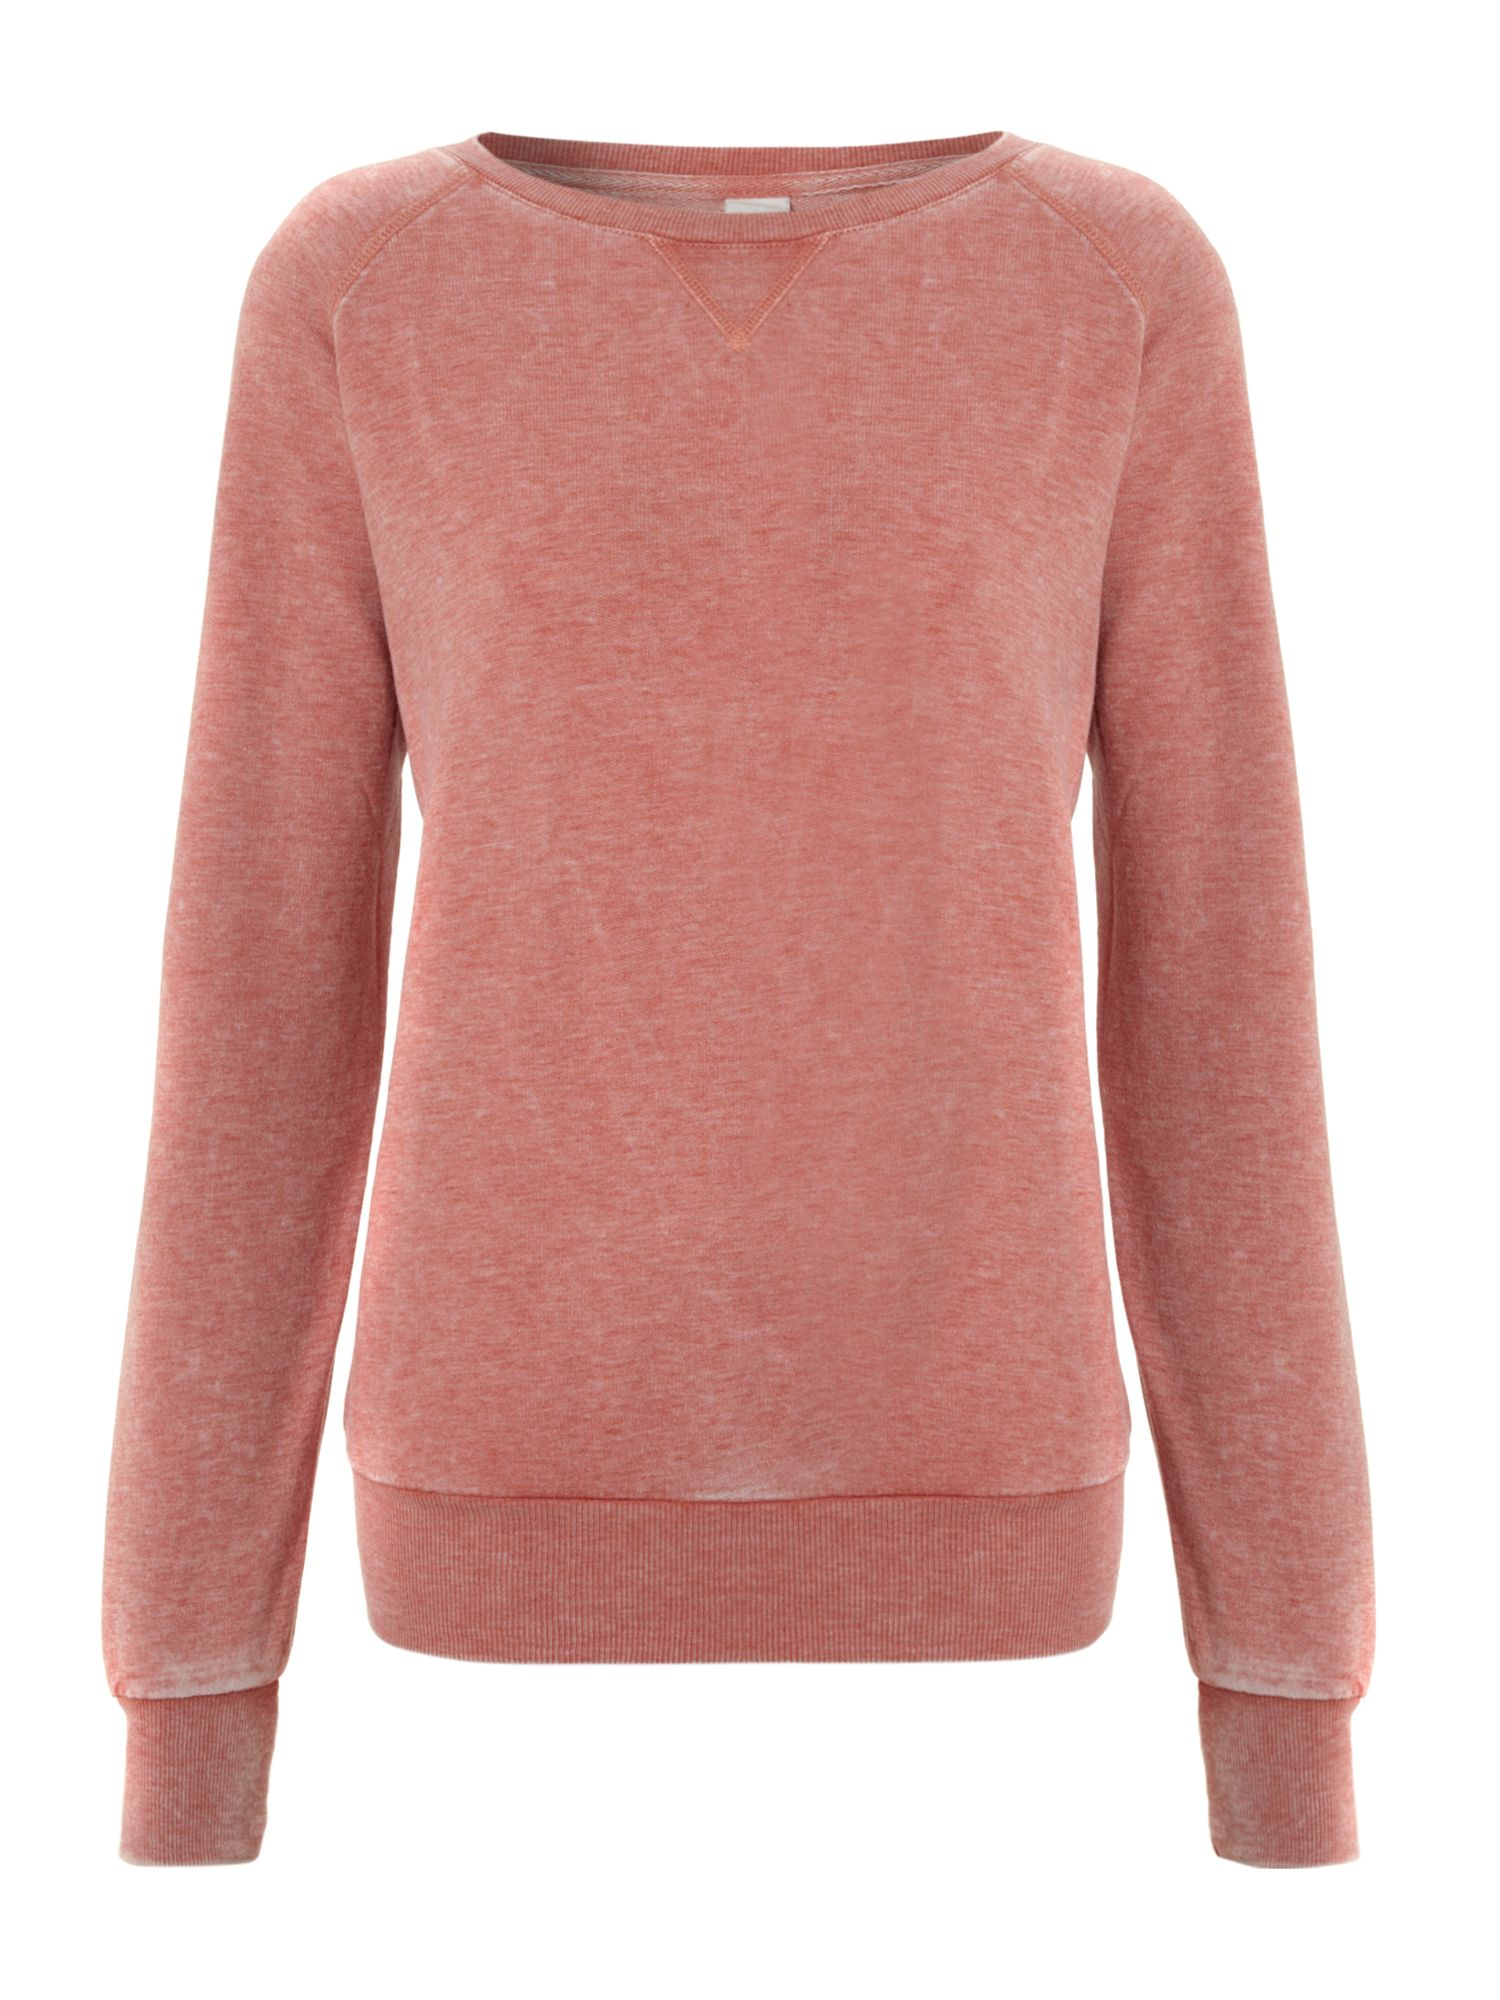 Long sleeve marl sweat top